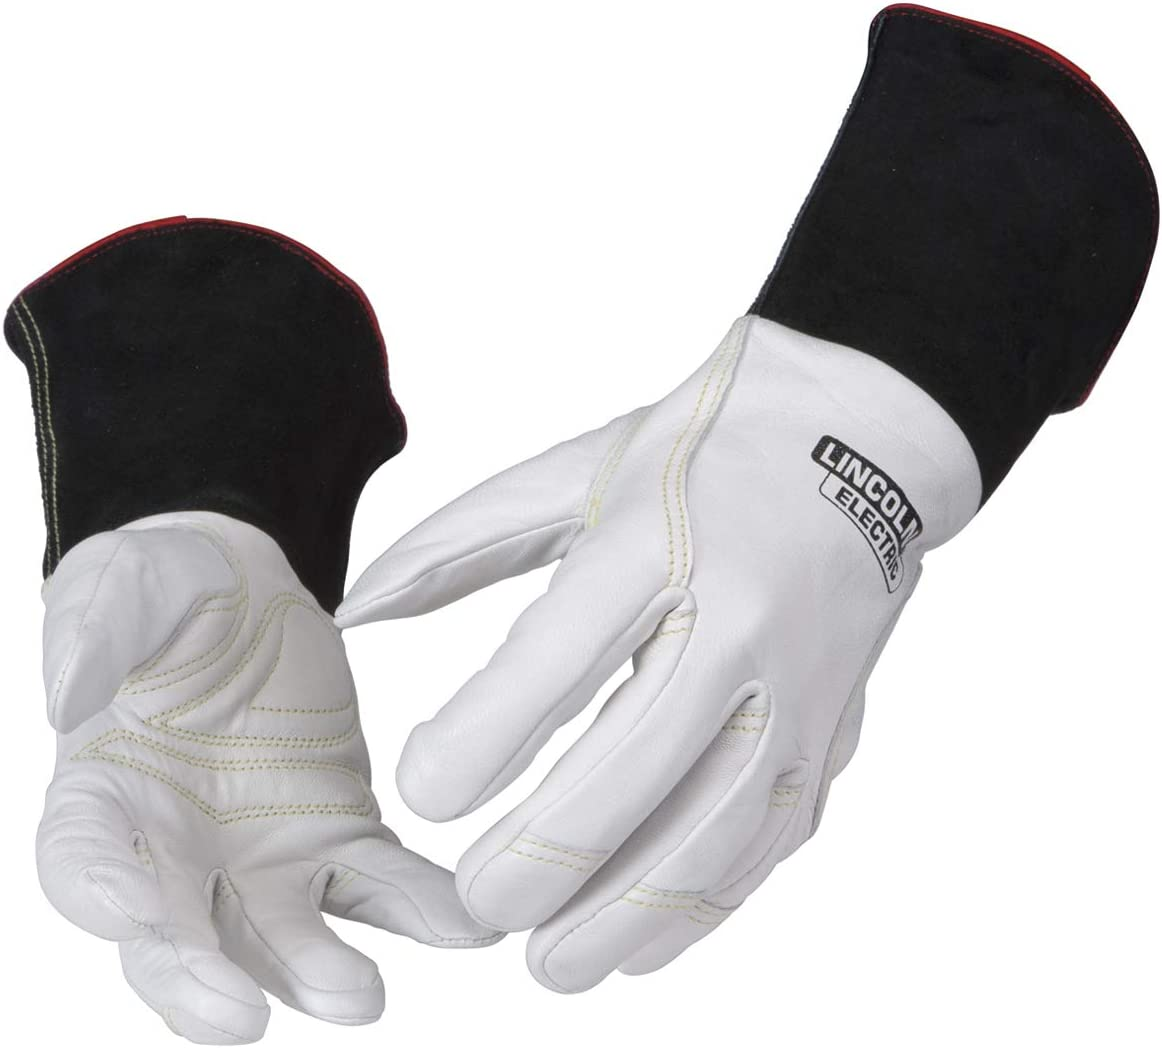 Lincoln Max 59% OFF Electric Premium TIG Welding Top Grain Leather Gloves Dealing full price reduction